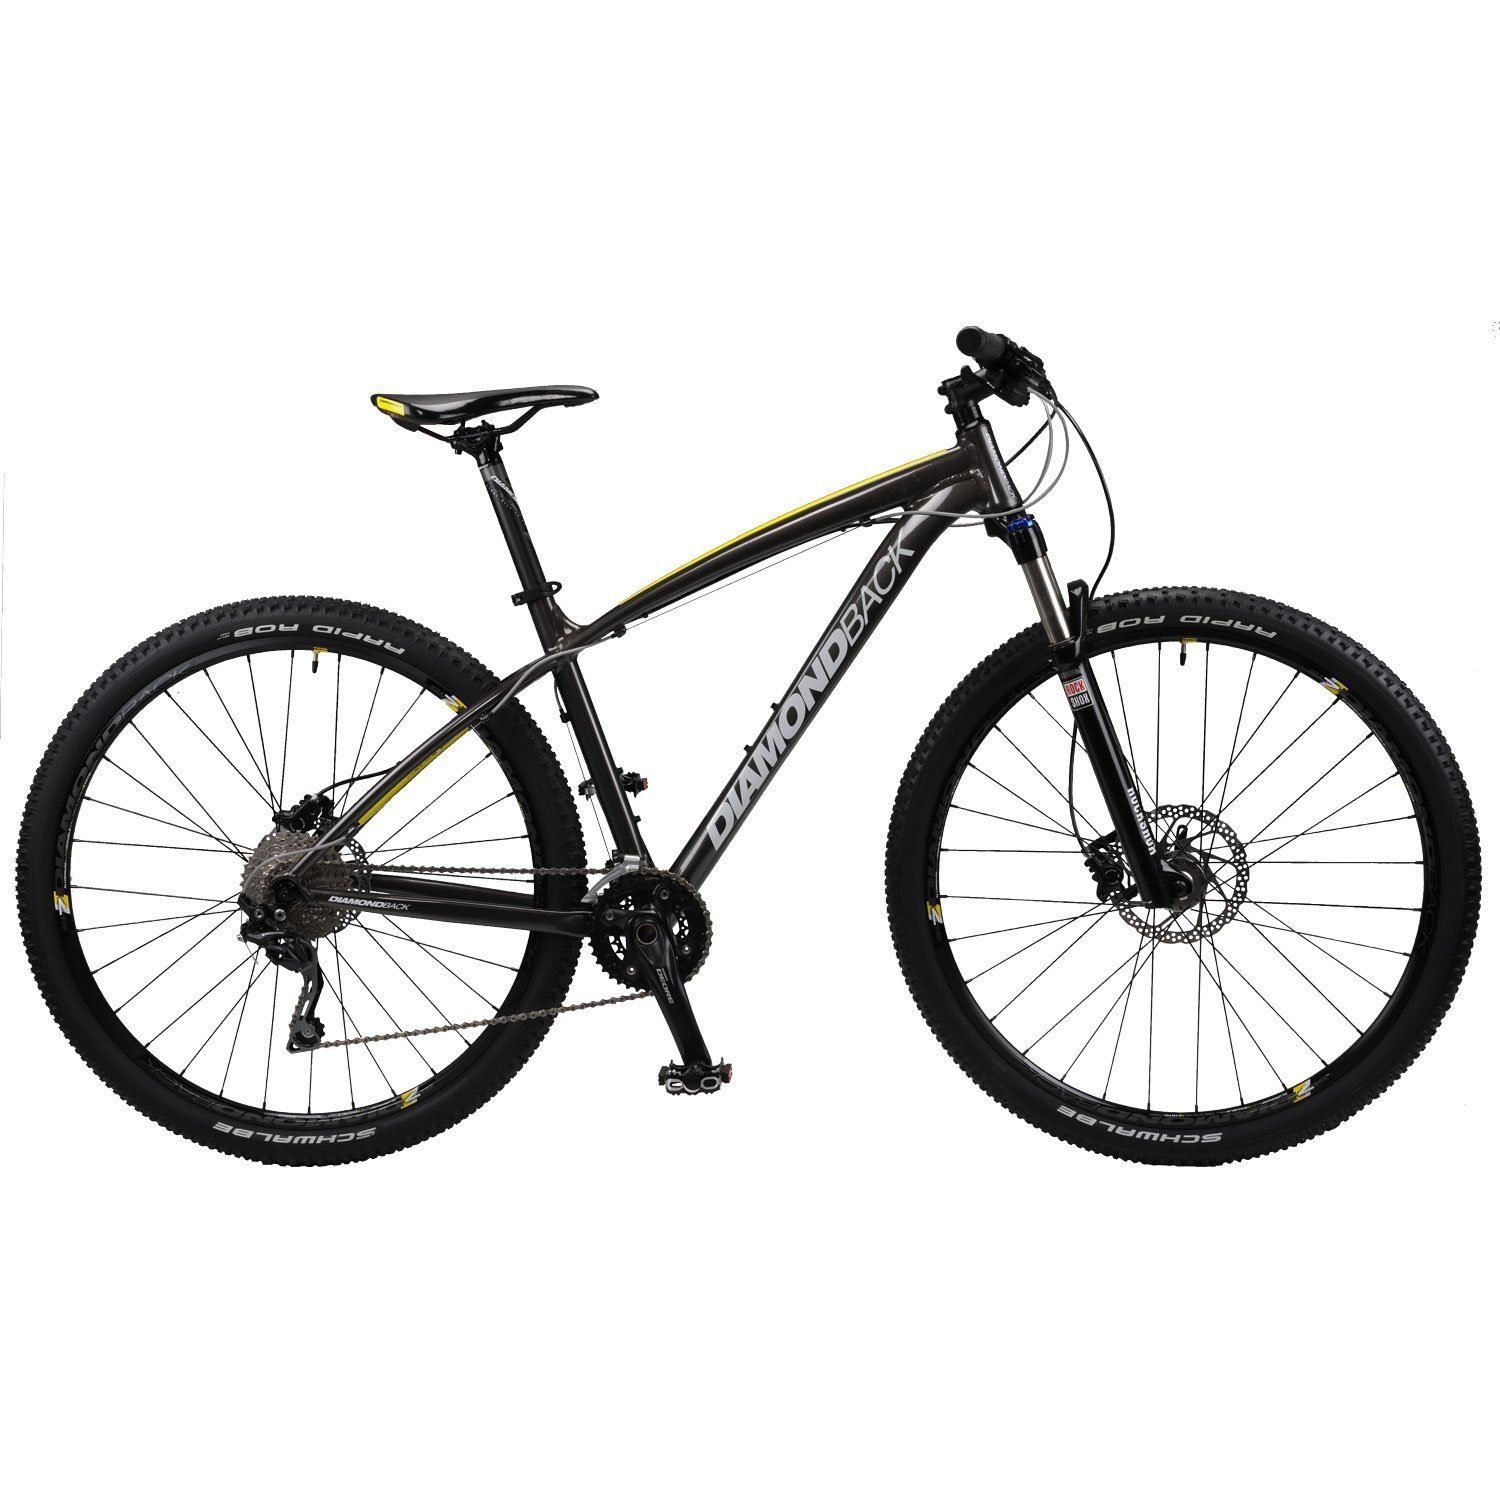 bd4030ef56a Diamondback Overdrive 29er Mountain Bike Review